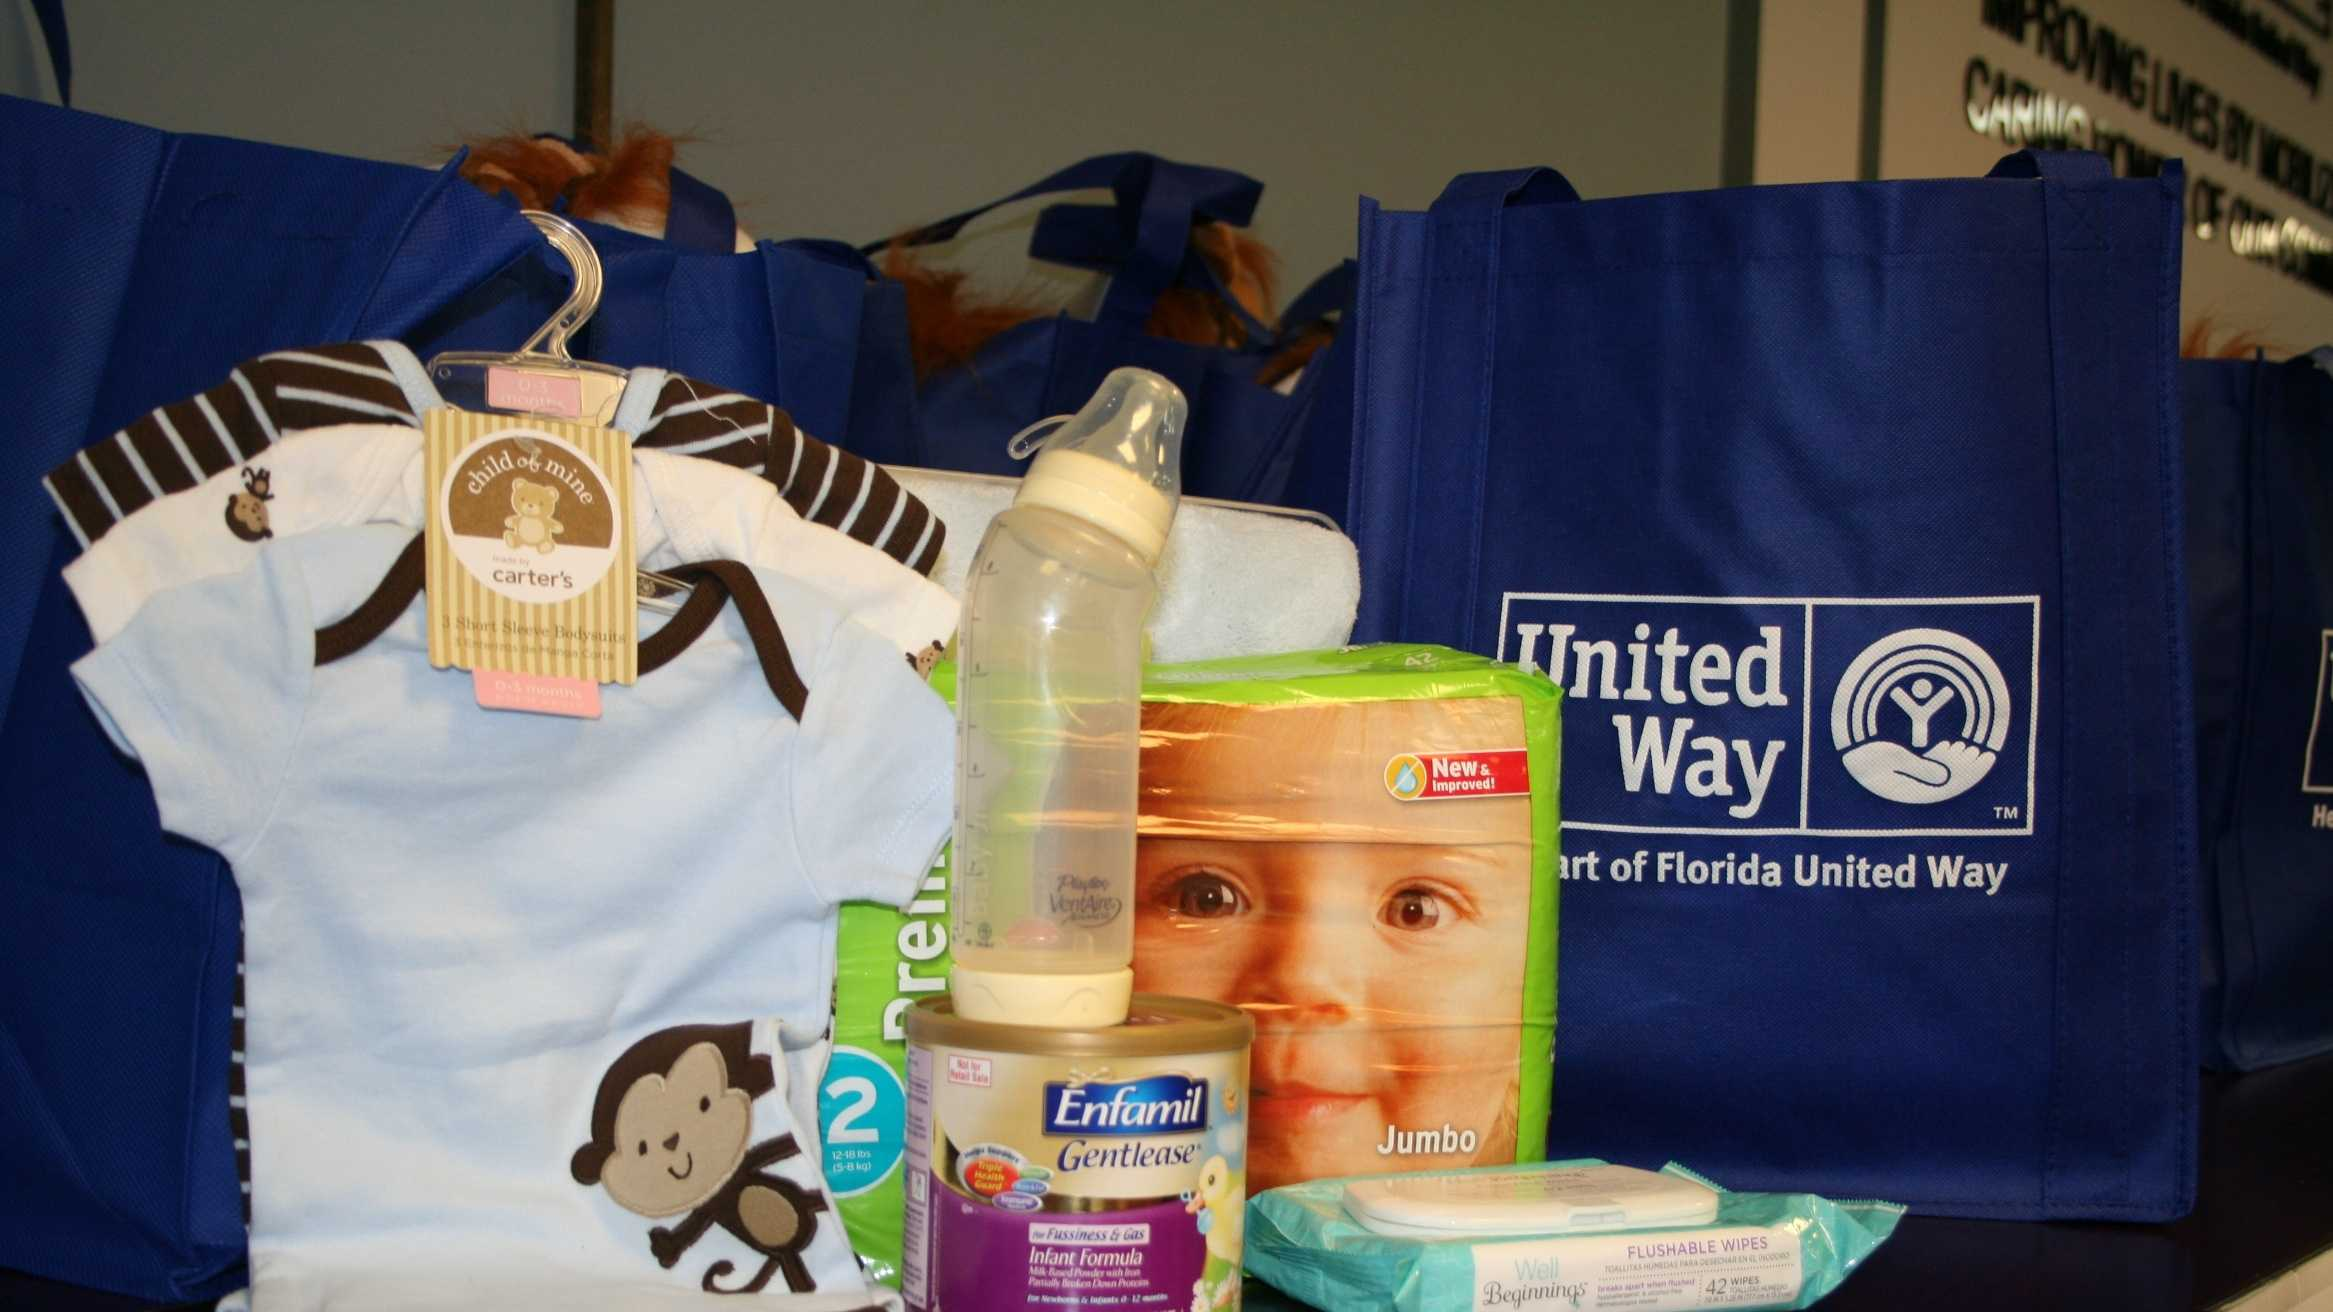 Heart of Florida United Way is collecting baby supplies for at-risk families in Central Florida.